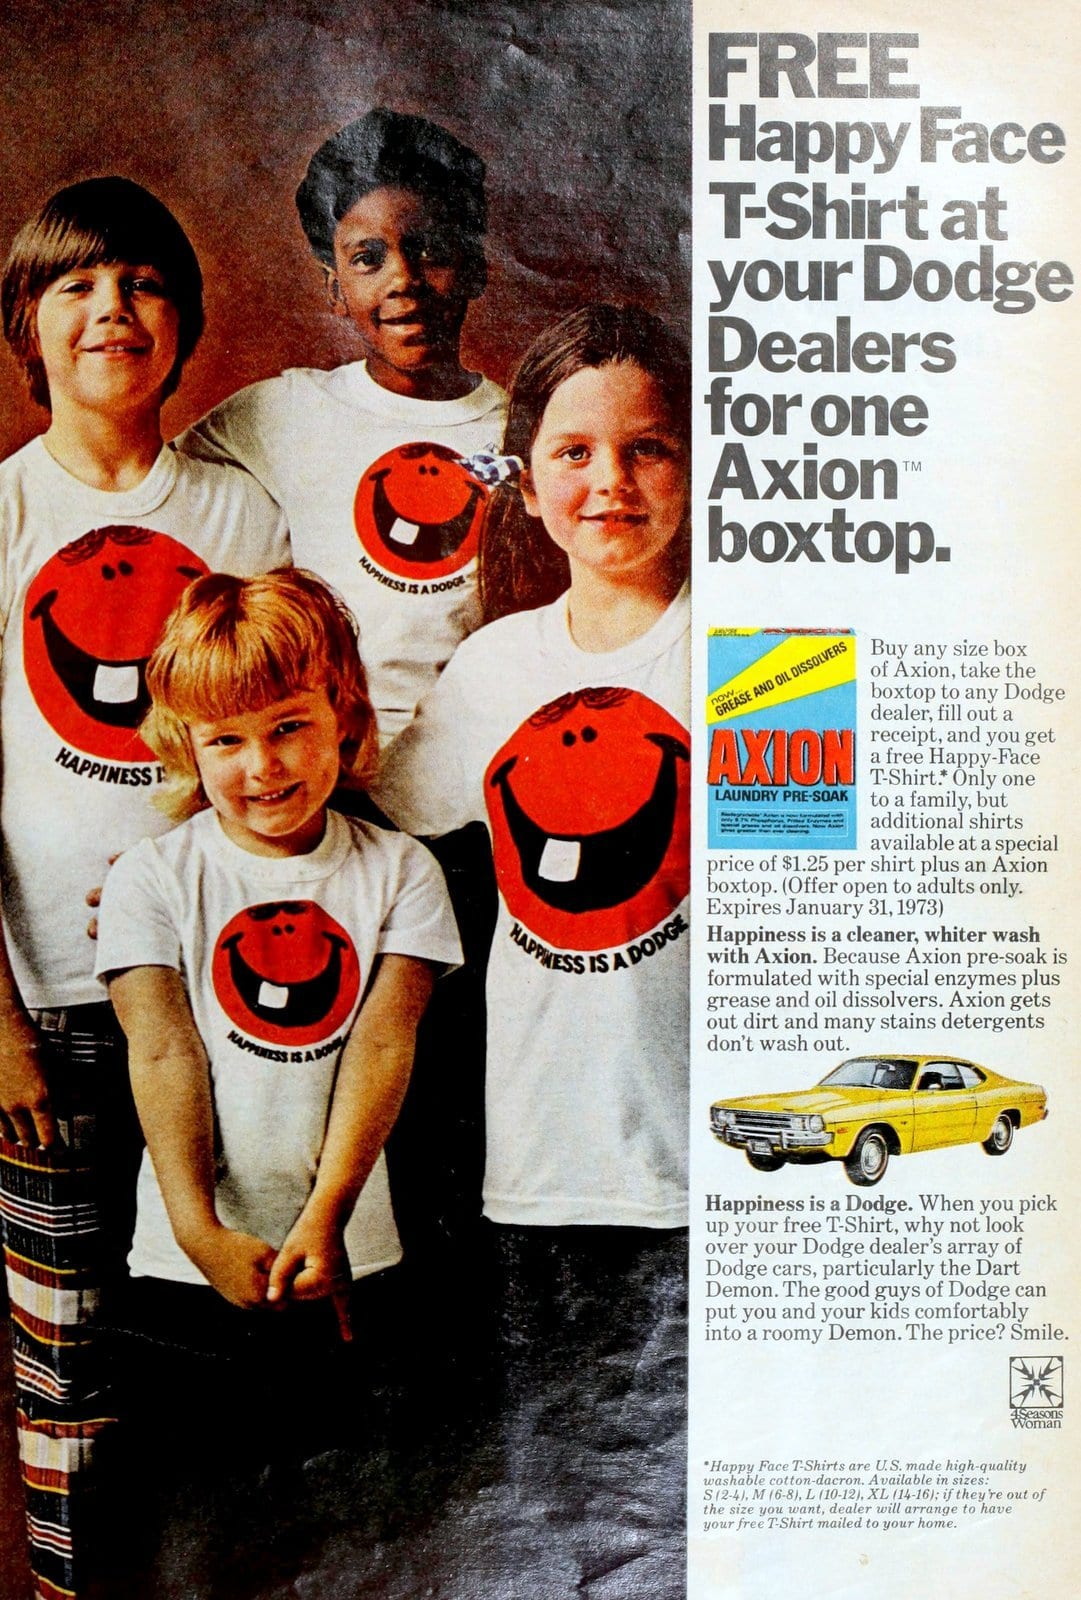 Axion laundry detergent happy face T-shirt offer with Dodge Cars (1972)